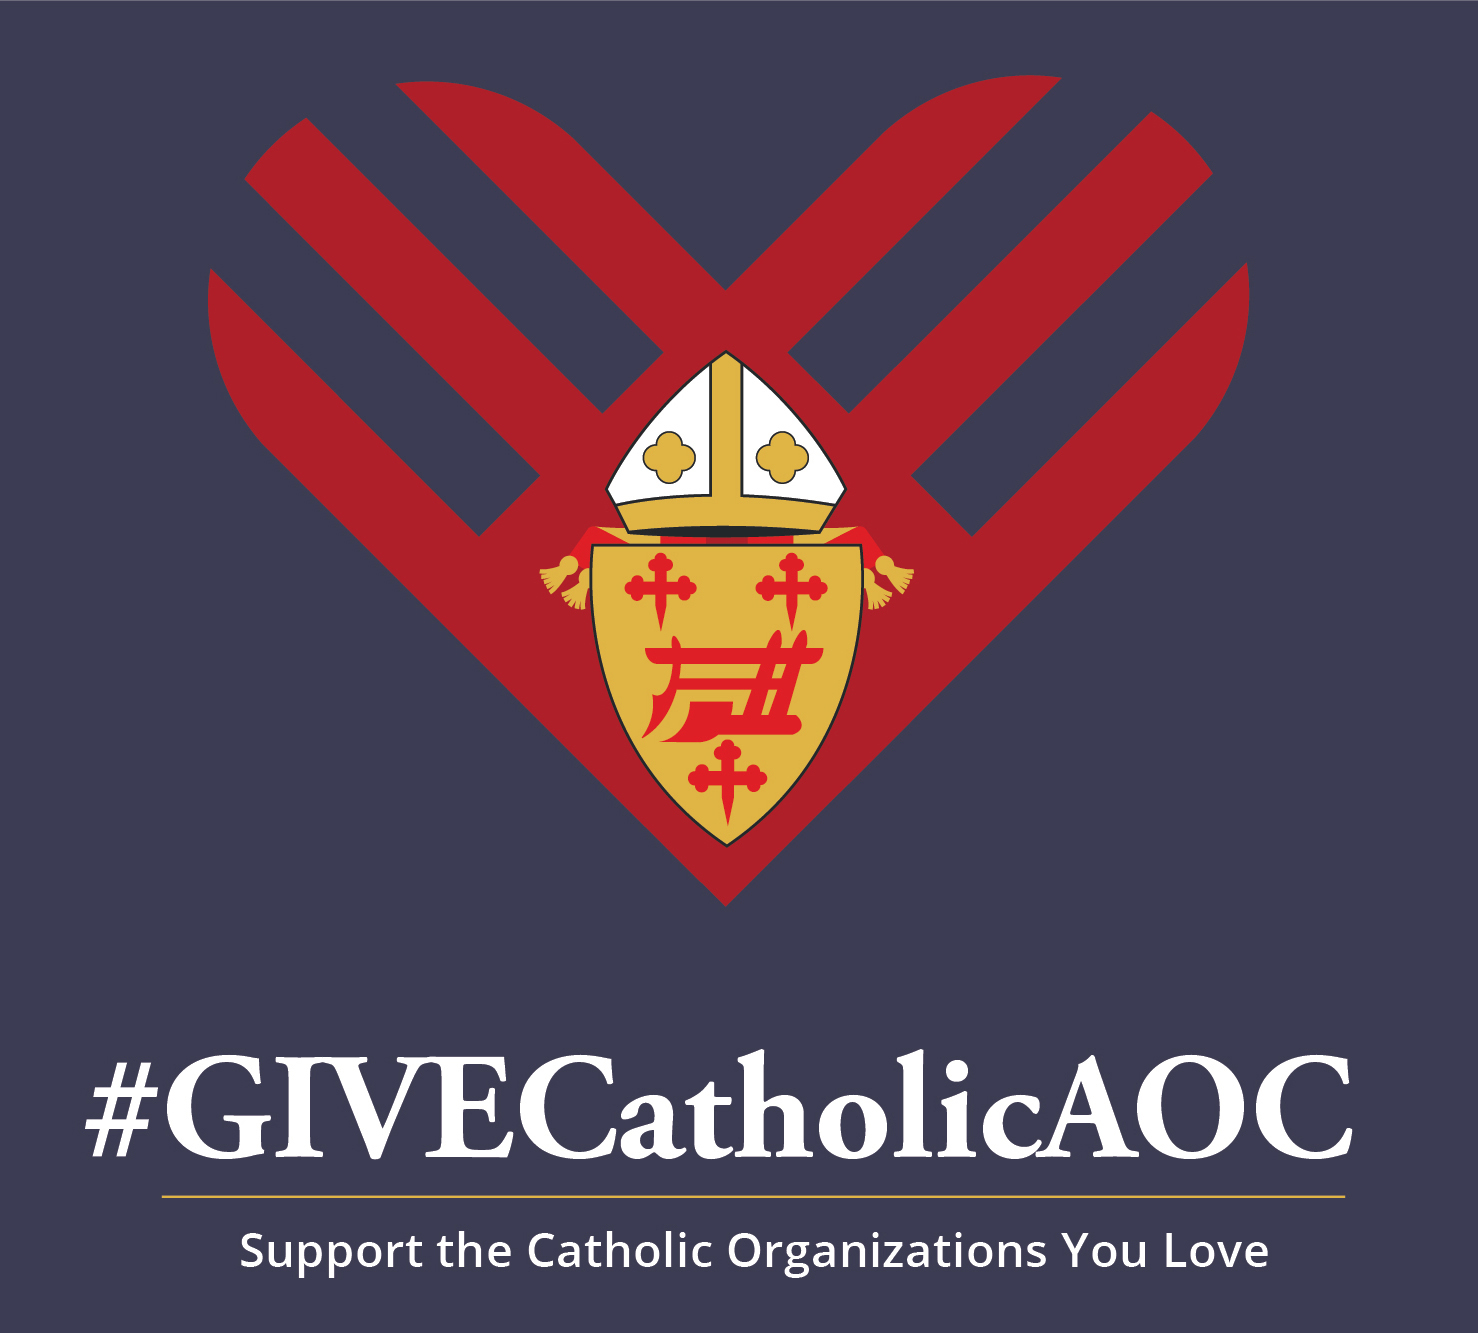 #GIVECatholicAOC Registration Is OPEN